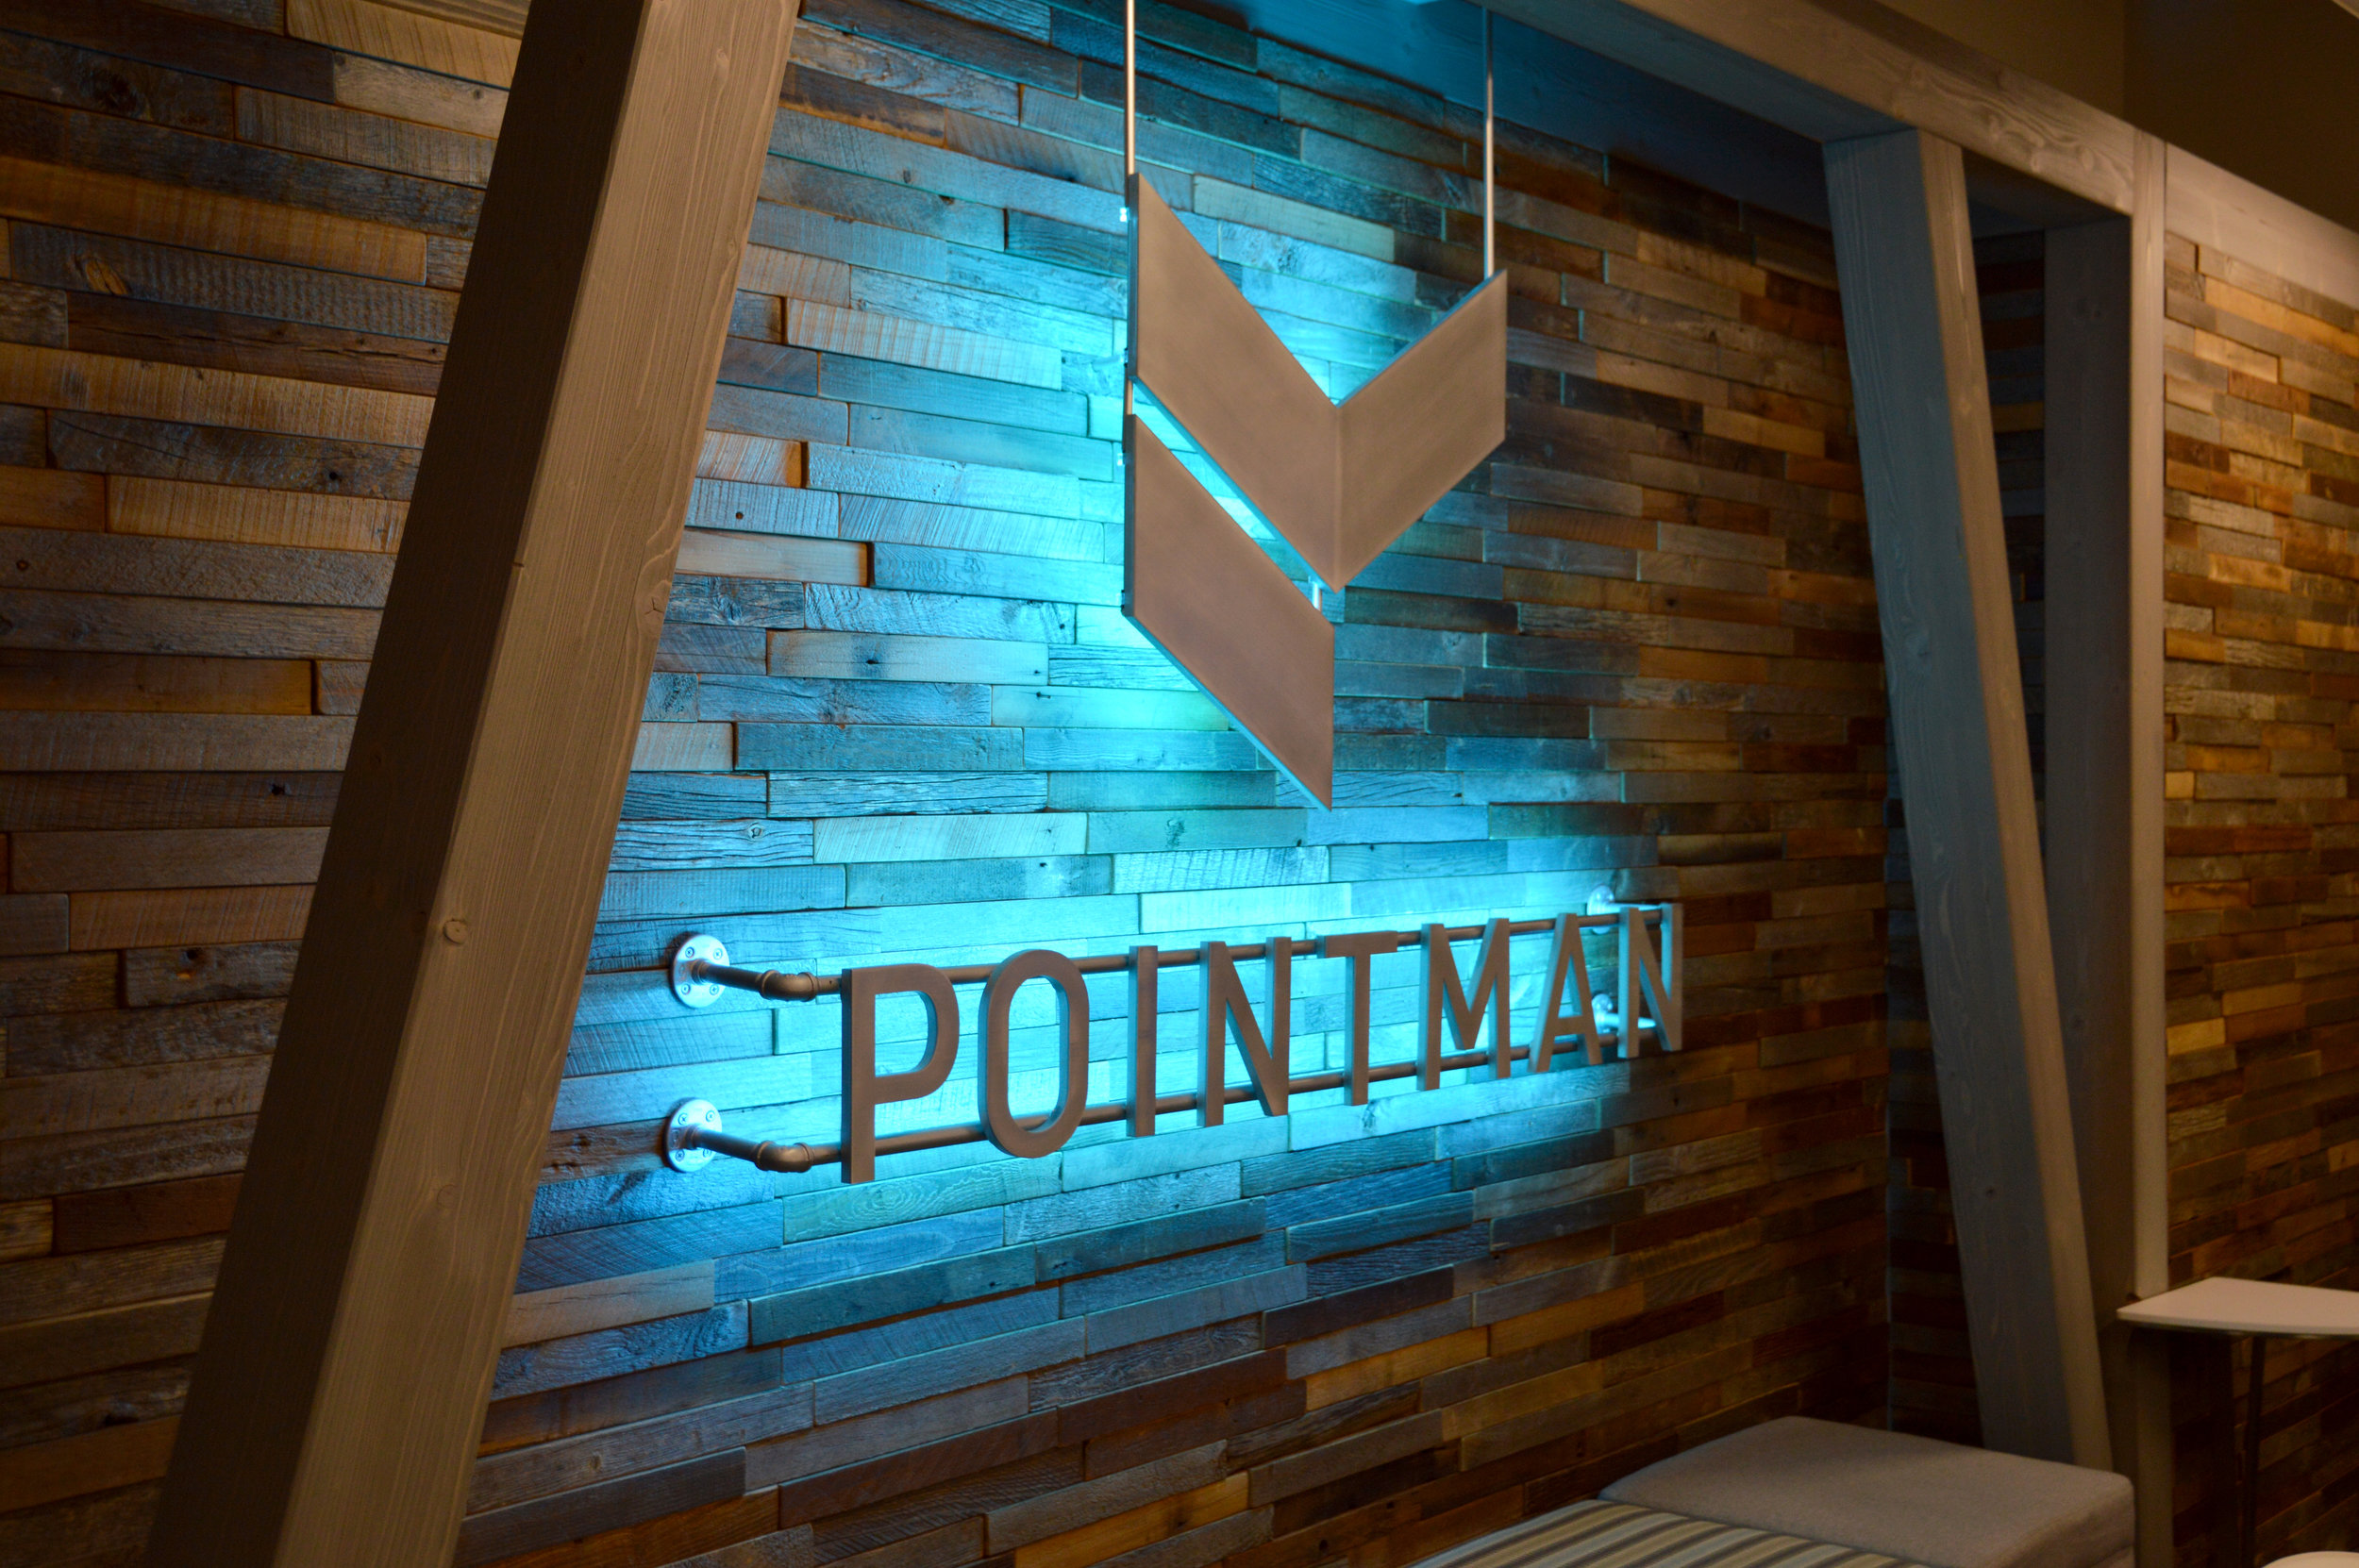 Pointman - Conference Room Display